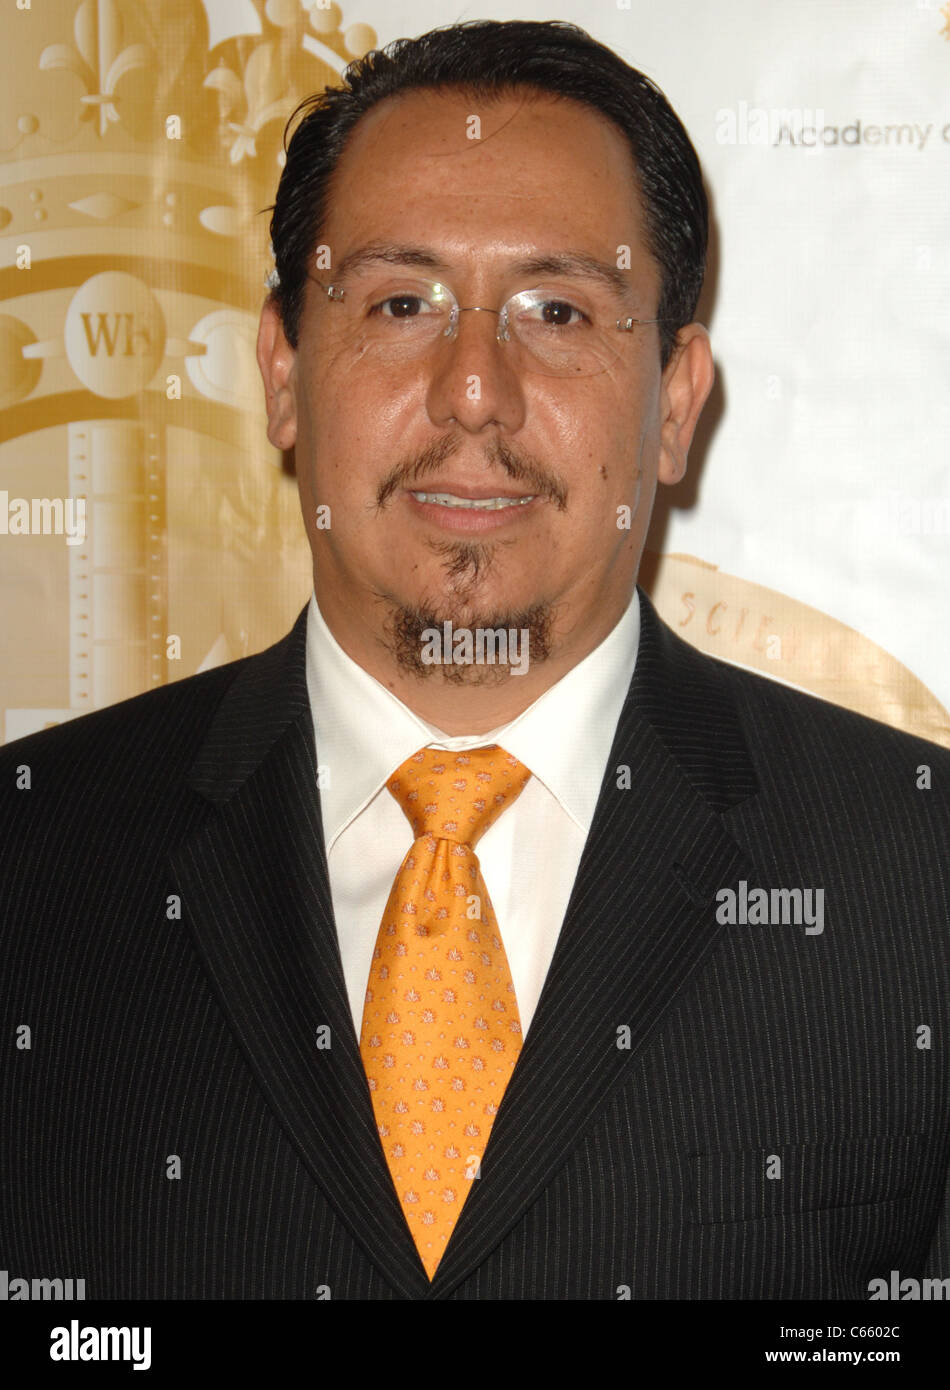 Consul General Juan Marco Gutierrez Gonzales Of Mexico in attendance for Academy of Couture Art Grand Fashion Gala, - Stock Image